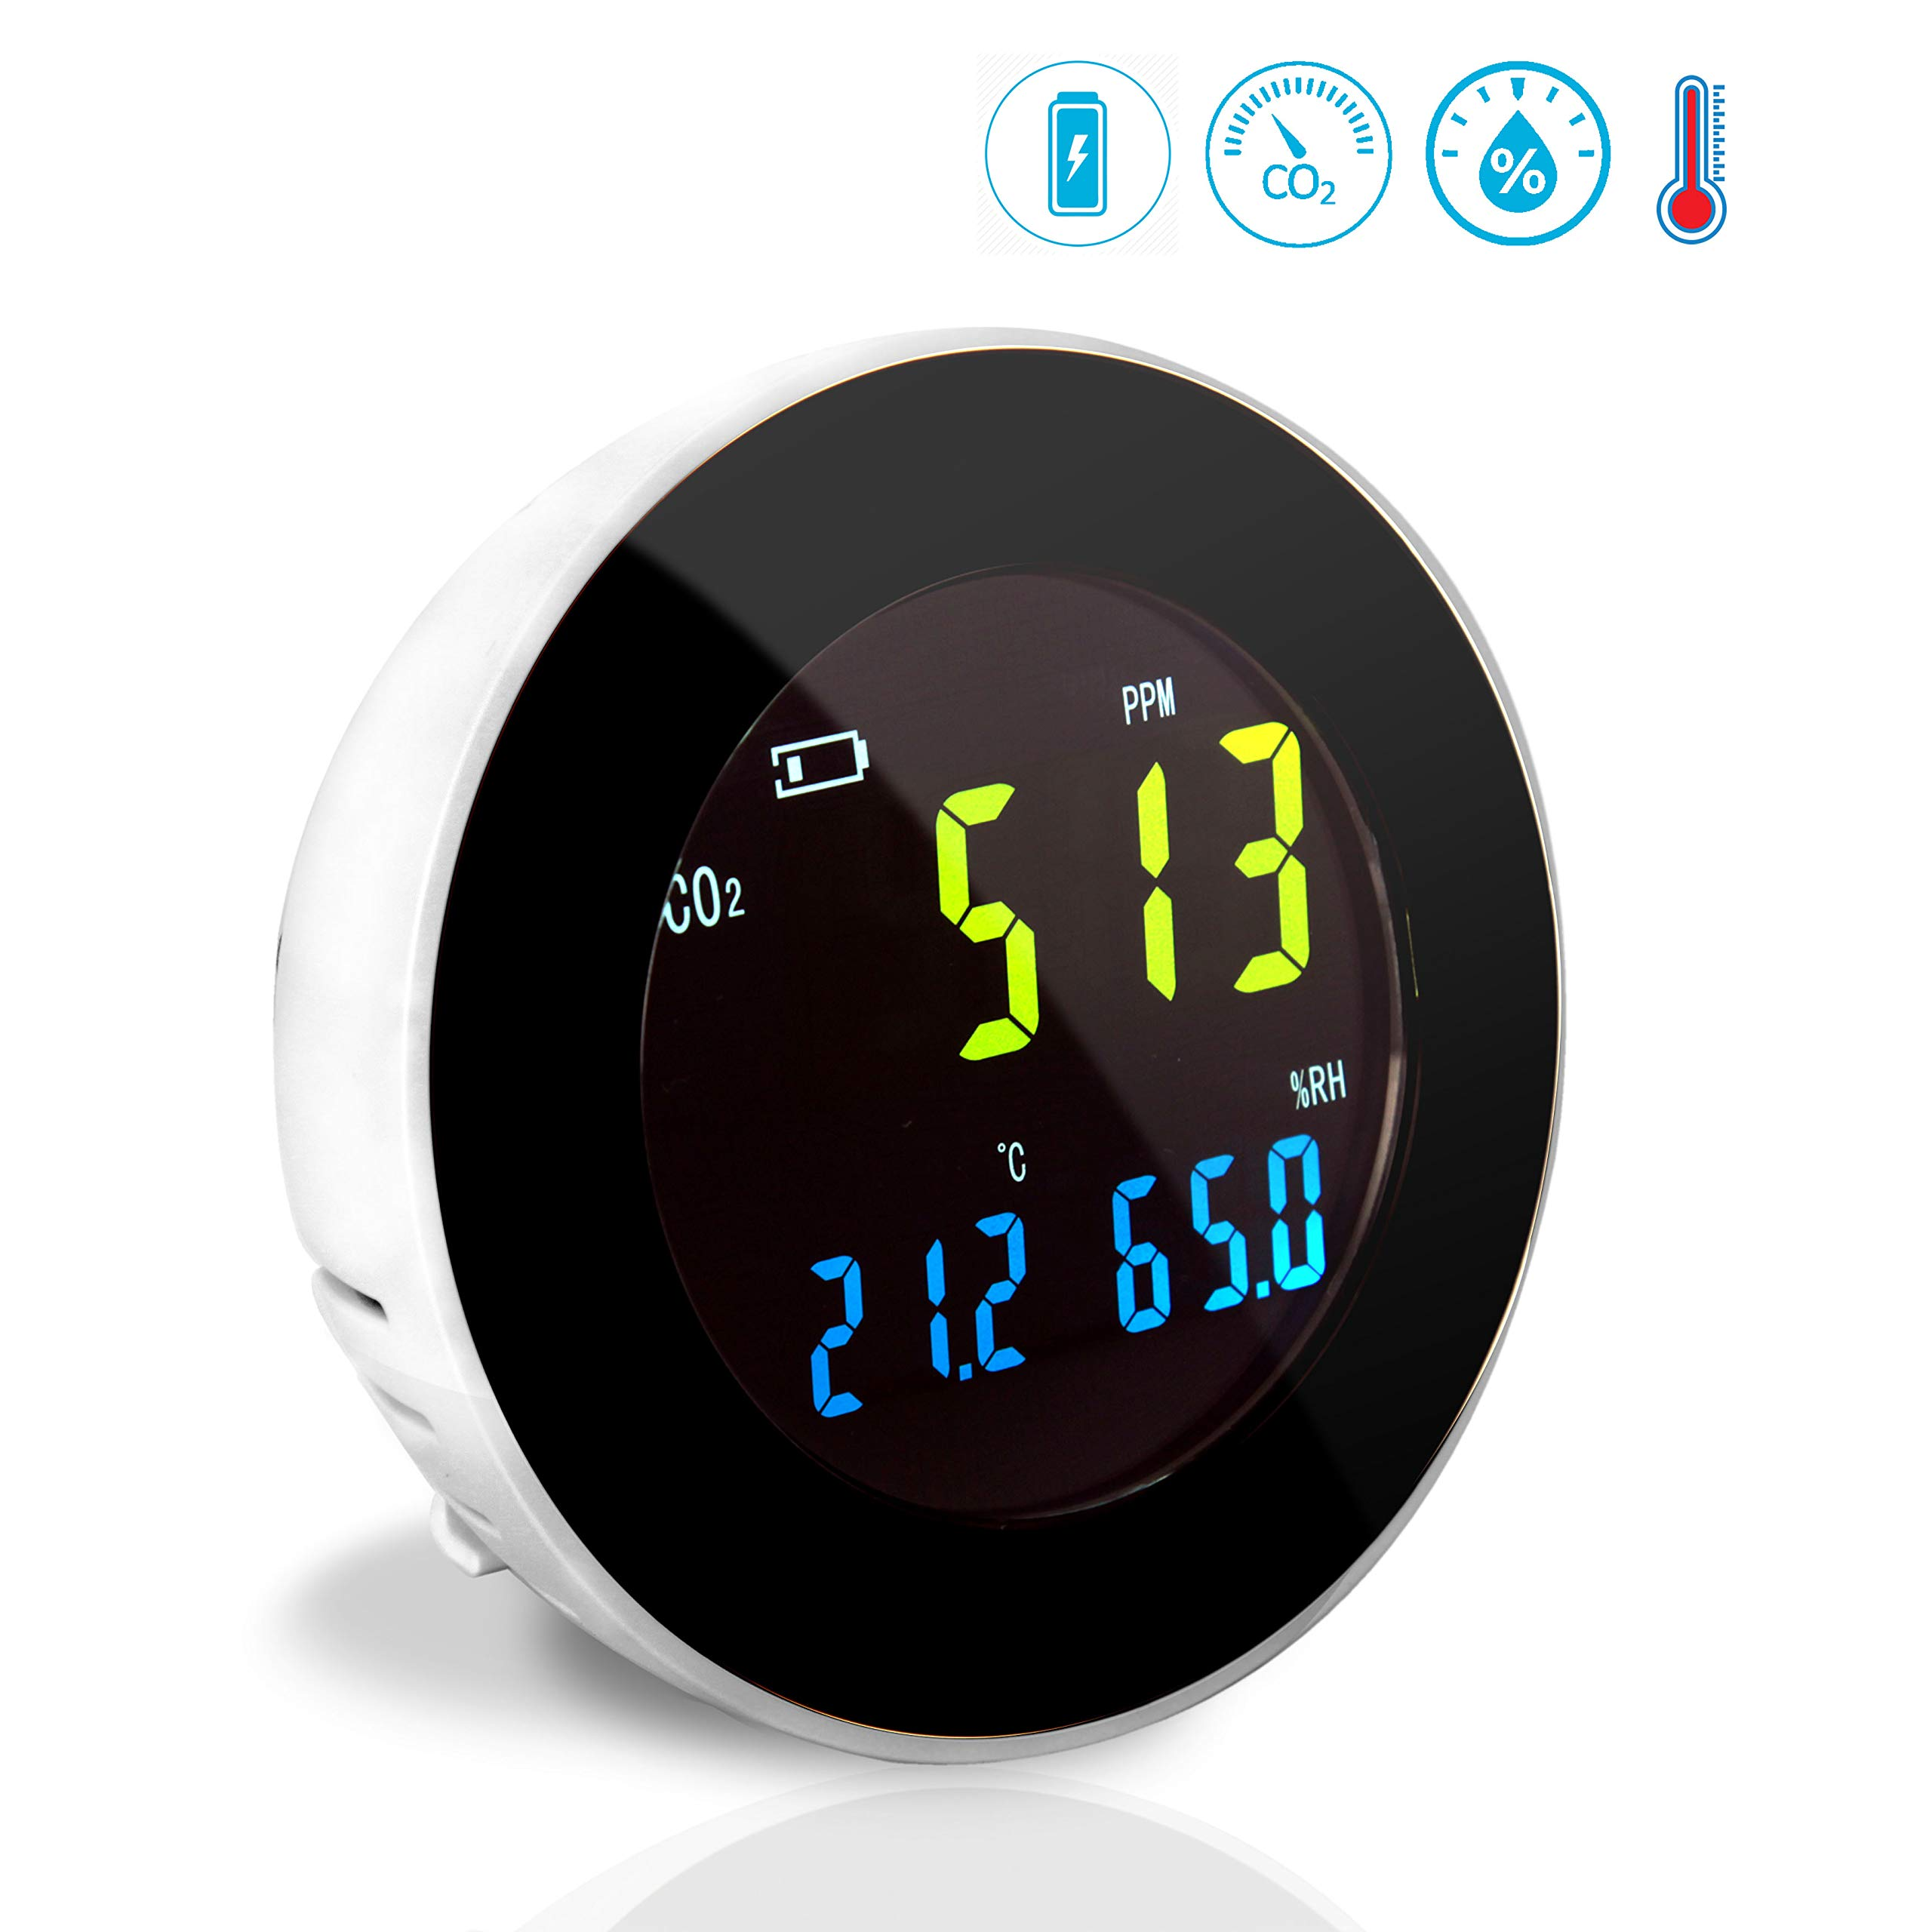 Smart Indoor Air Quality Monitor - Digital Hygrometer Thermometer Test Gauge, Air Tester for Home, Pollution Sensor Detector, Carbon Dioxide Meter, Temperature and Humidity Tester Kit - Pyle PCO2MT05